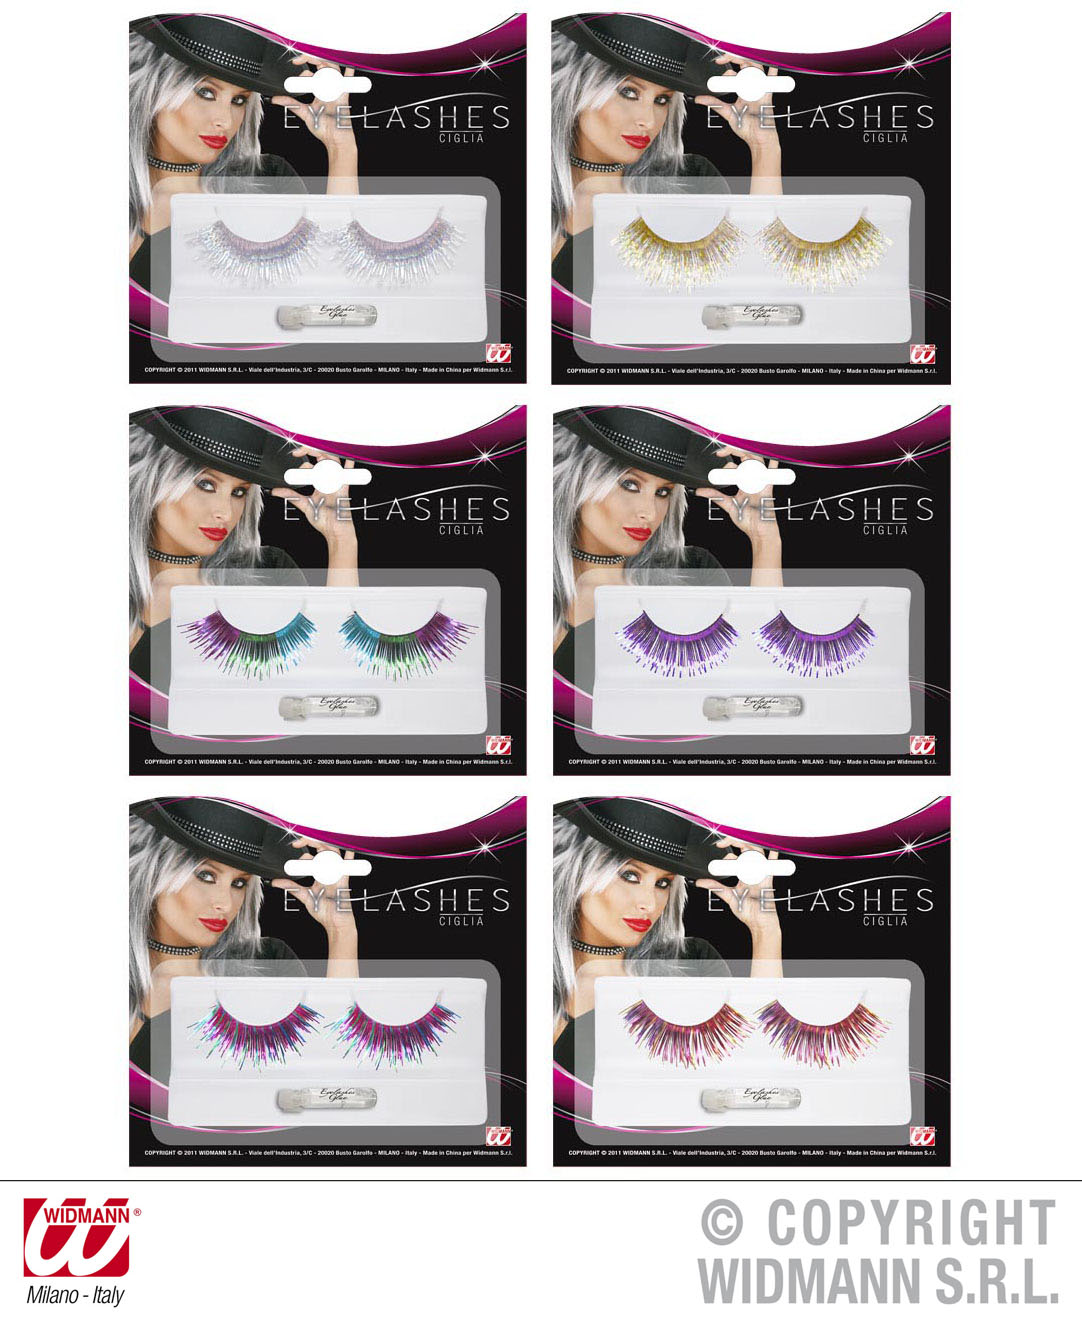 WIMPERN, Metallic, silber,gold,bunt Karneval, Party Glamour